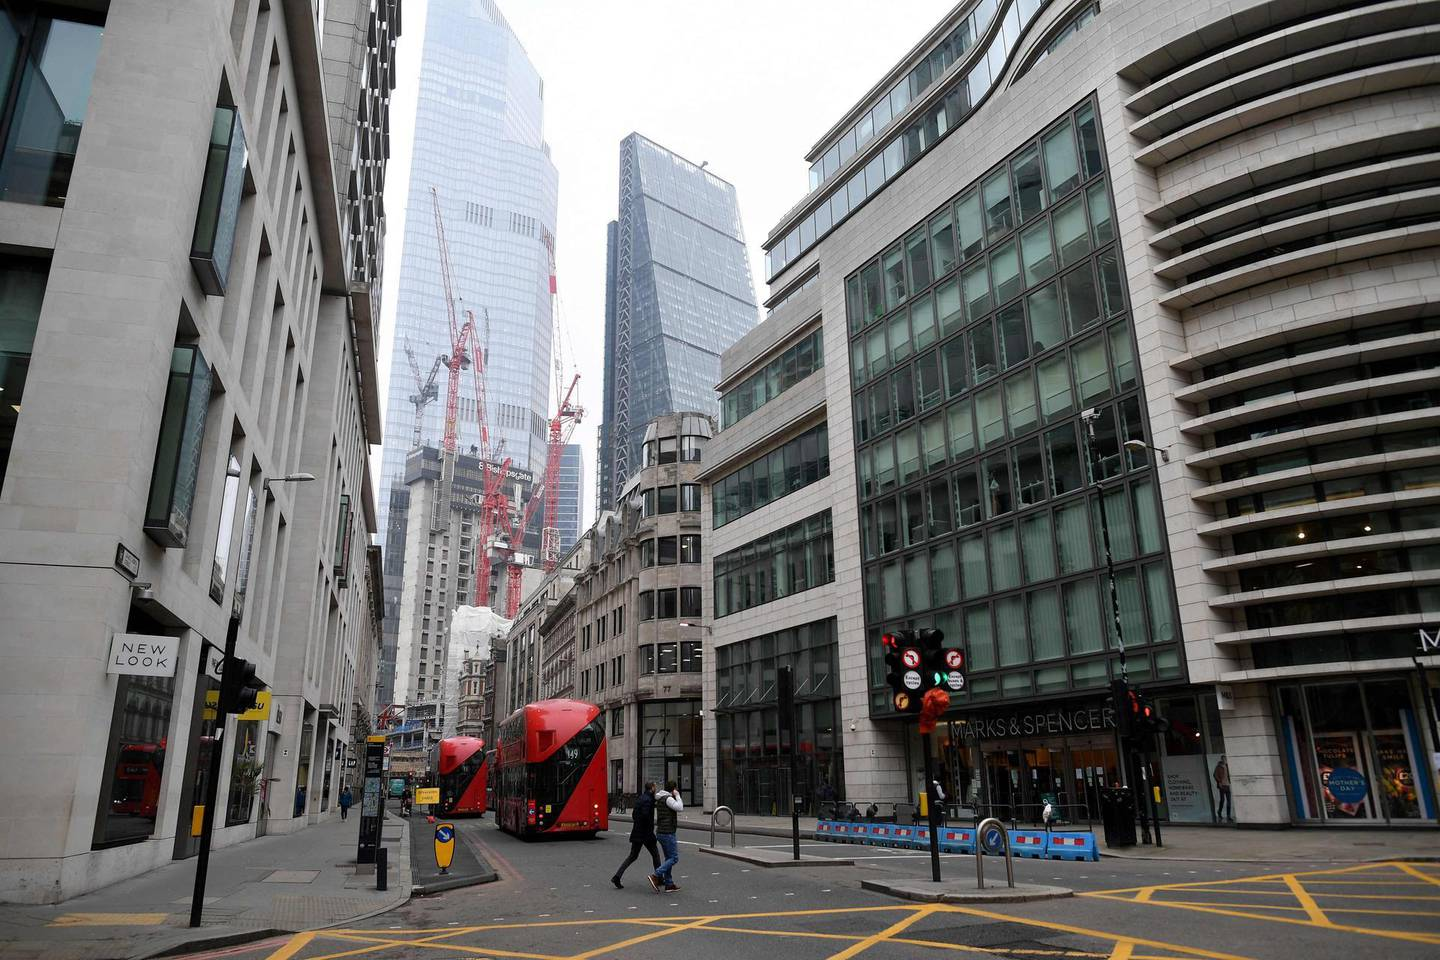 Pedestrians cross a near-deserted street in the City of London, on March 2, 2021, as the 50-storey office tower development of 8 Bishopsgate is seen in the background. / AFP / JUSTIN TALLIS